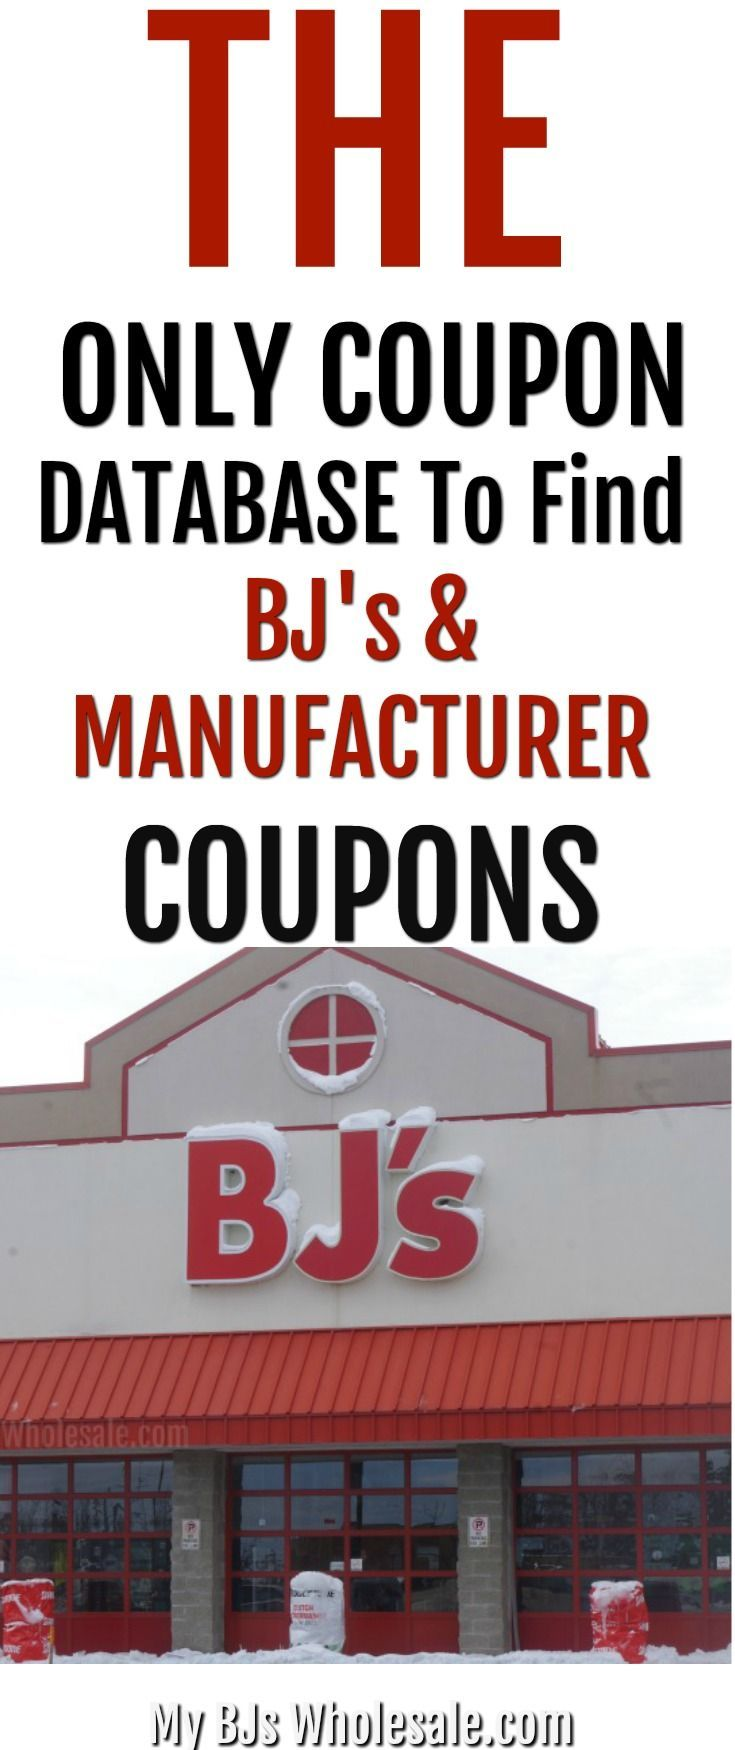 This is the only coupon database where you will find BJ's store coupons and manufacurer and ecoupons to pair. Best site to save money at BJs Wholesale club.